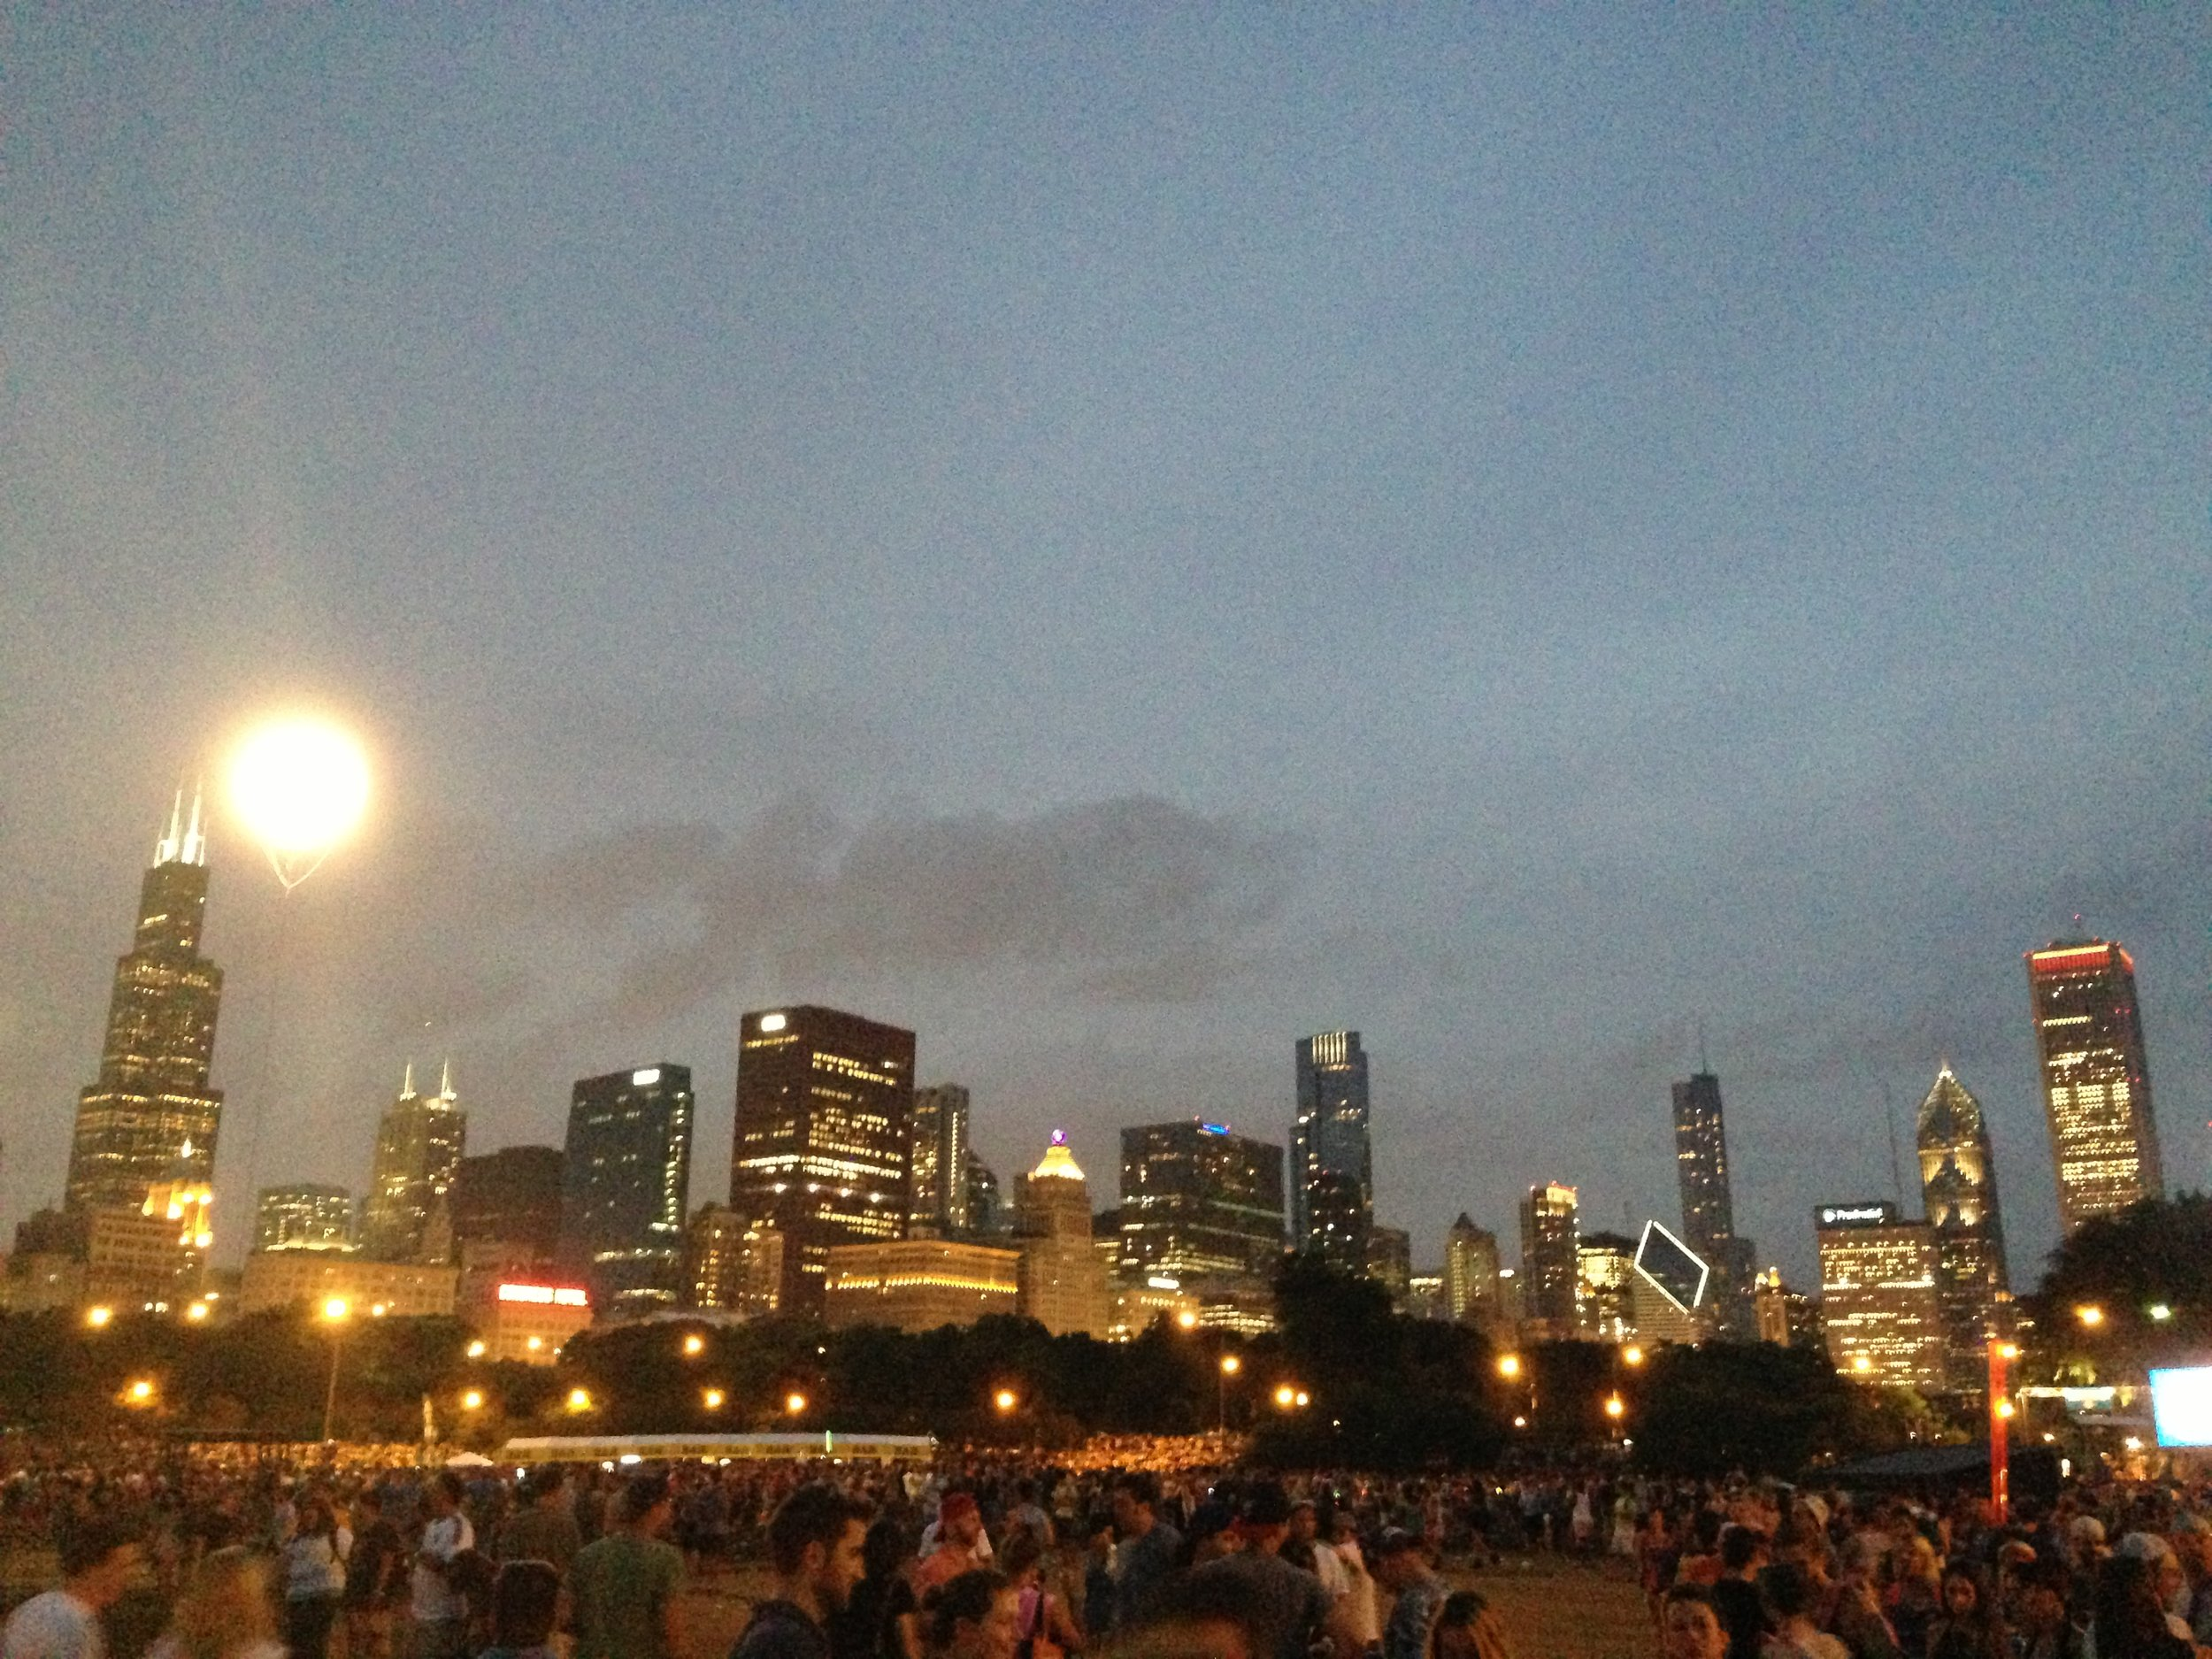 Chicago's Lollapalooza. 6 reasons why I miss Chicago